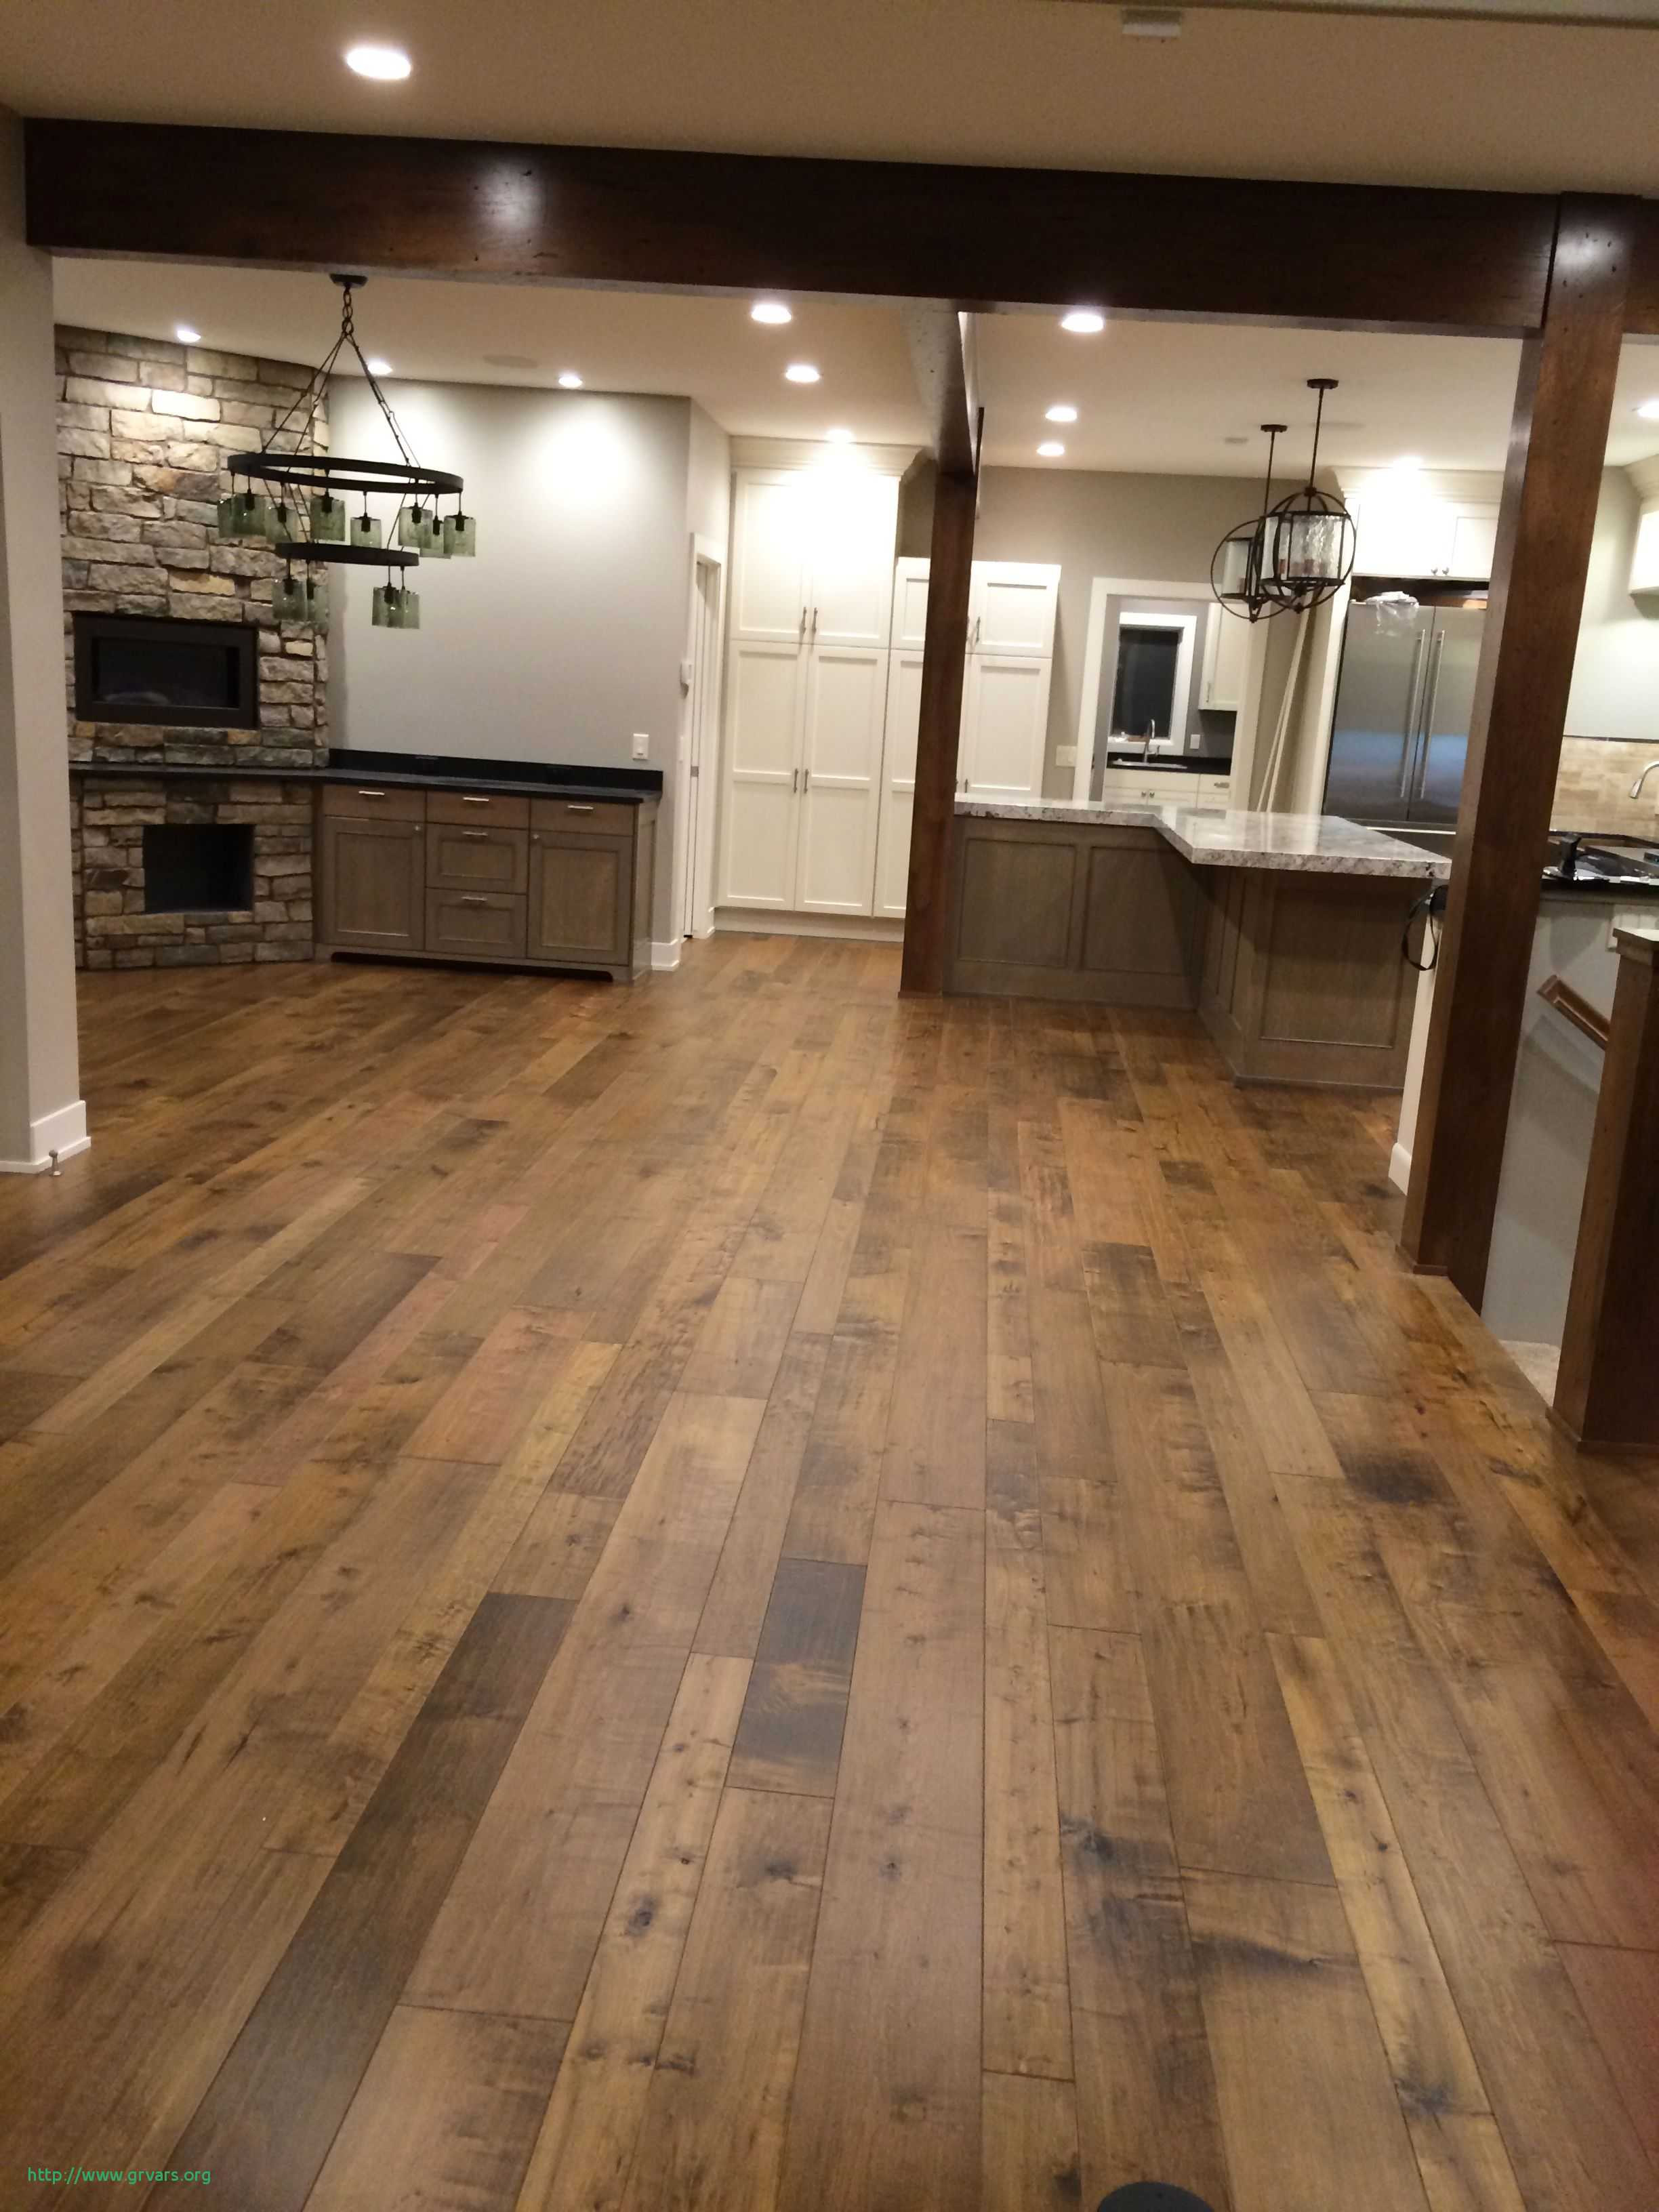 hardwood floors different colors different rooms of 25 nouveau installing laminate flooring through multiple rooms with regard to installing laminate flooring through multiple rooms nouveau monterey hardwood collection rooms and spaces